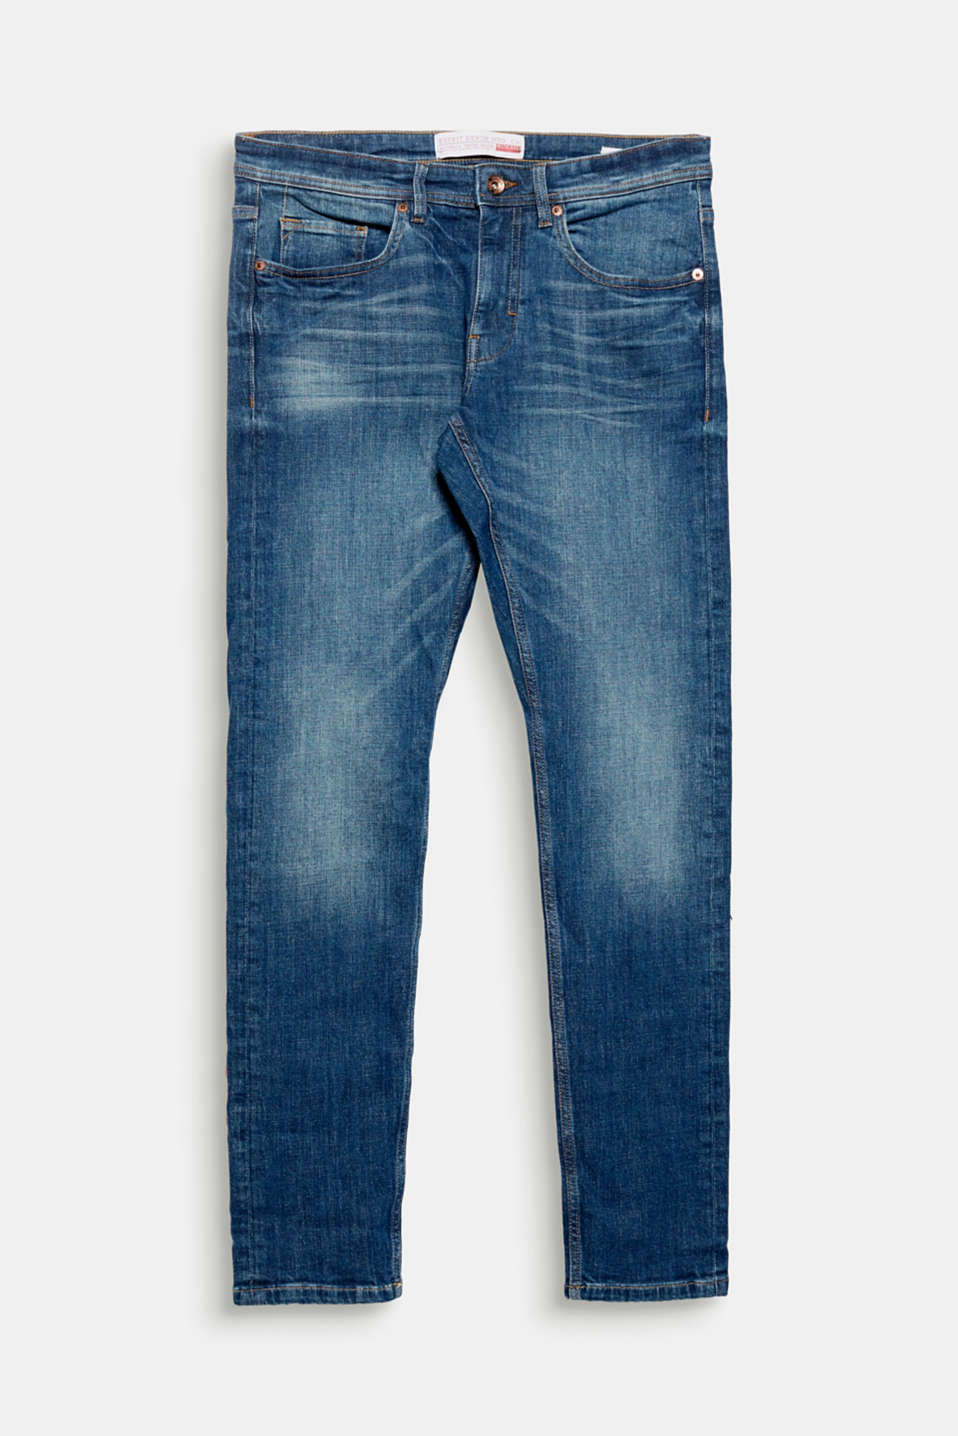 A timeless denim piece: slim-fit five-pocket jeans with subtle washed-out effects